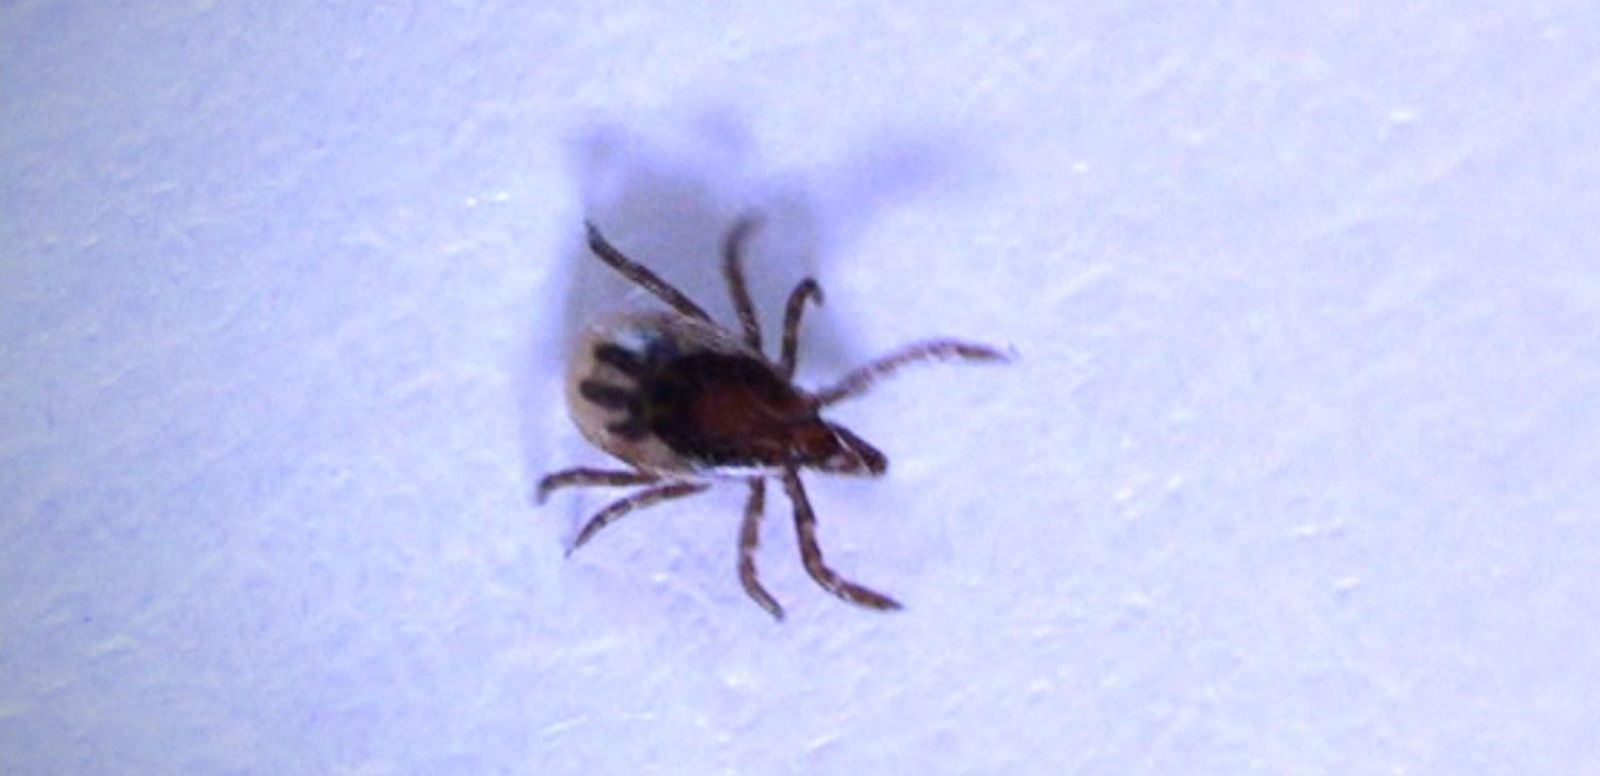 VIDEO: How Parents Can Protect Kids From Ticks